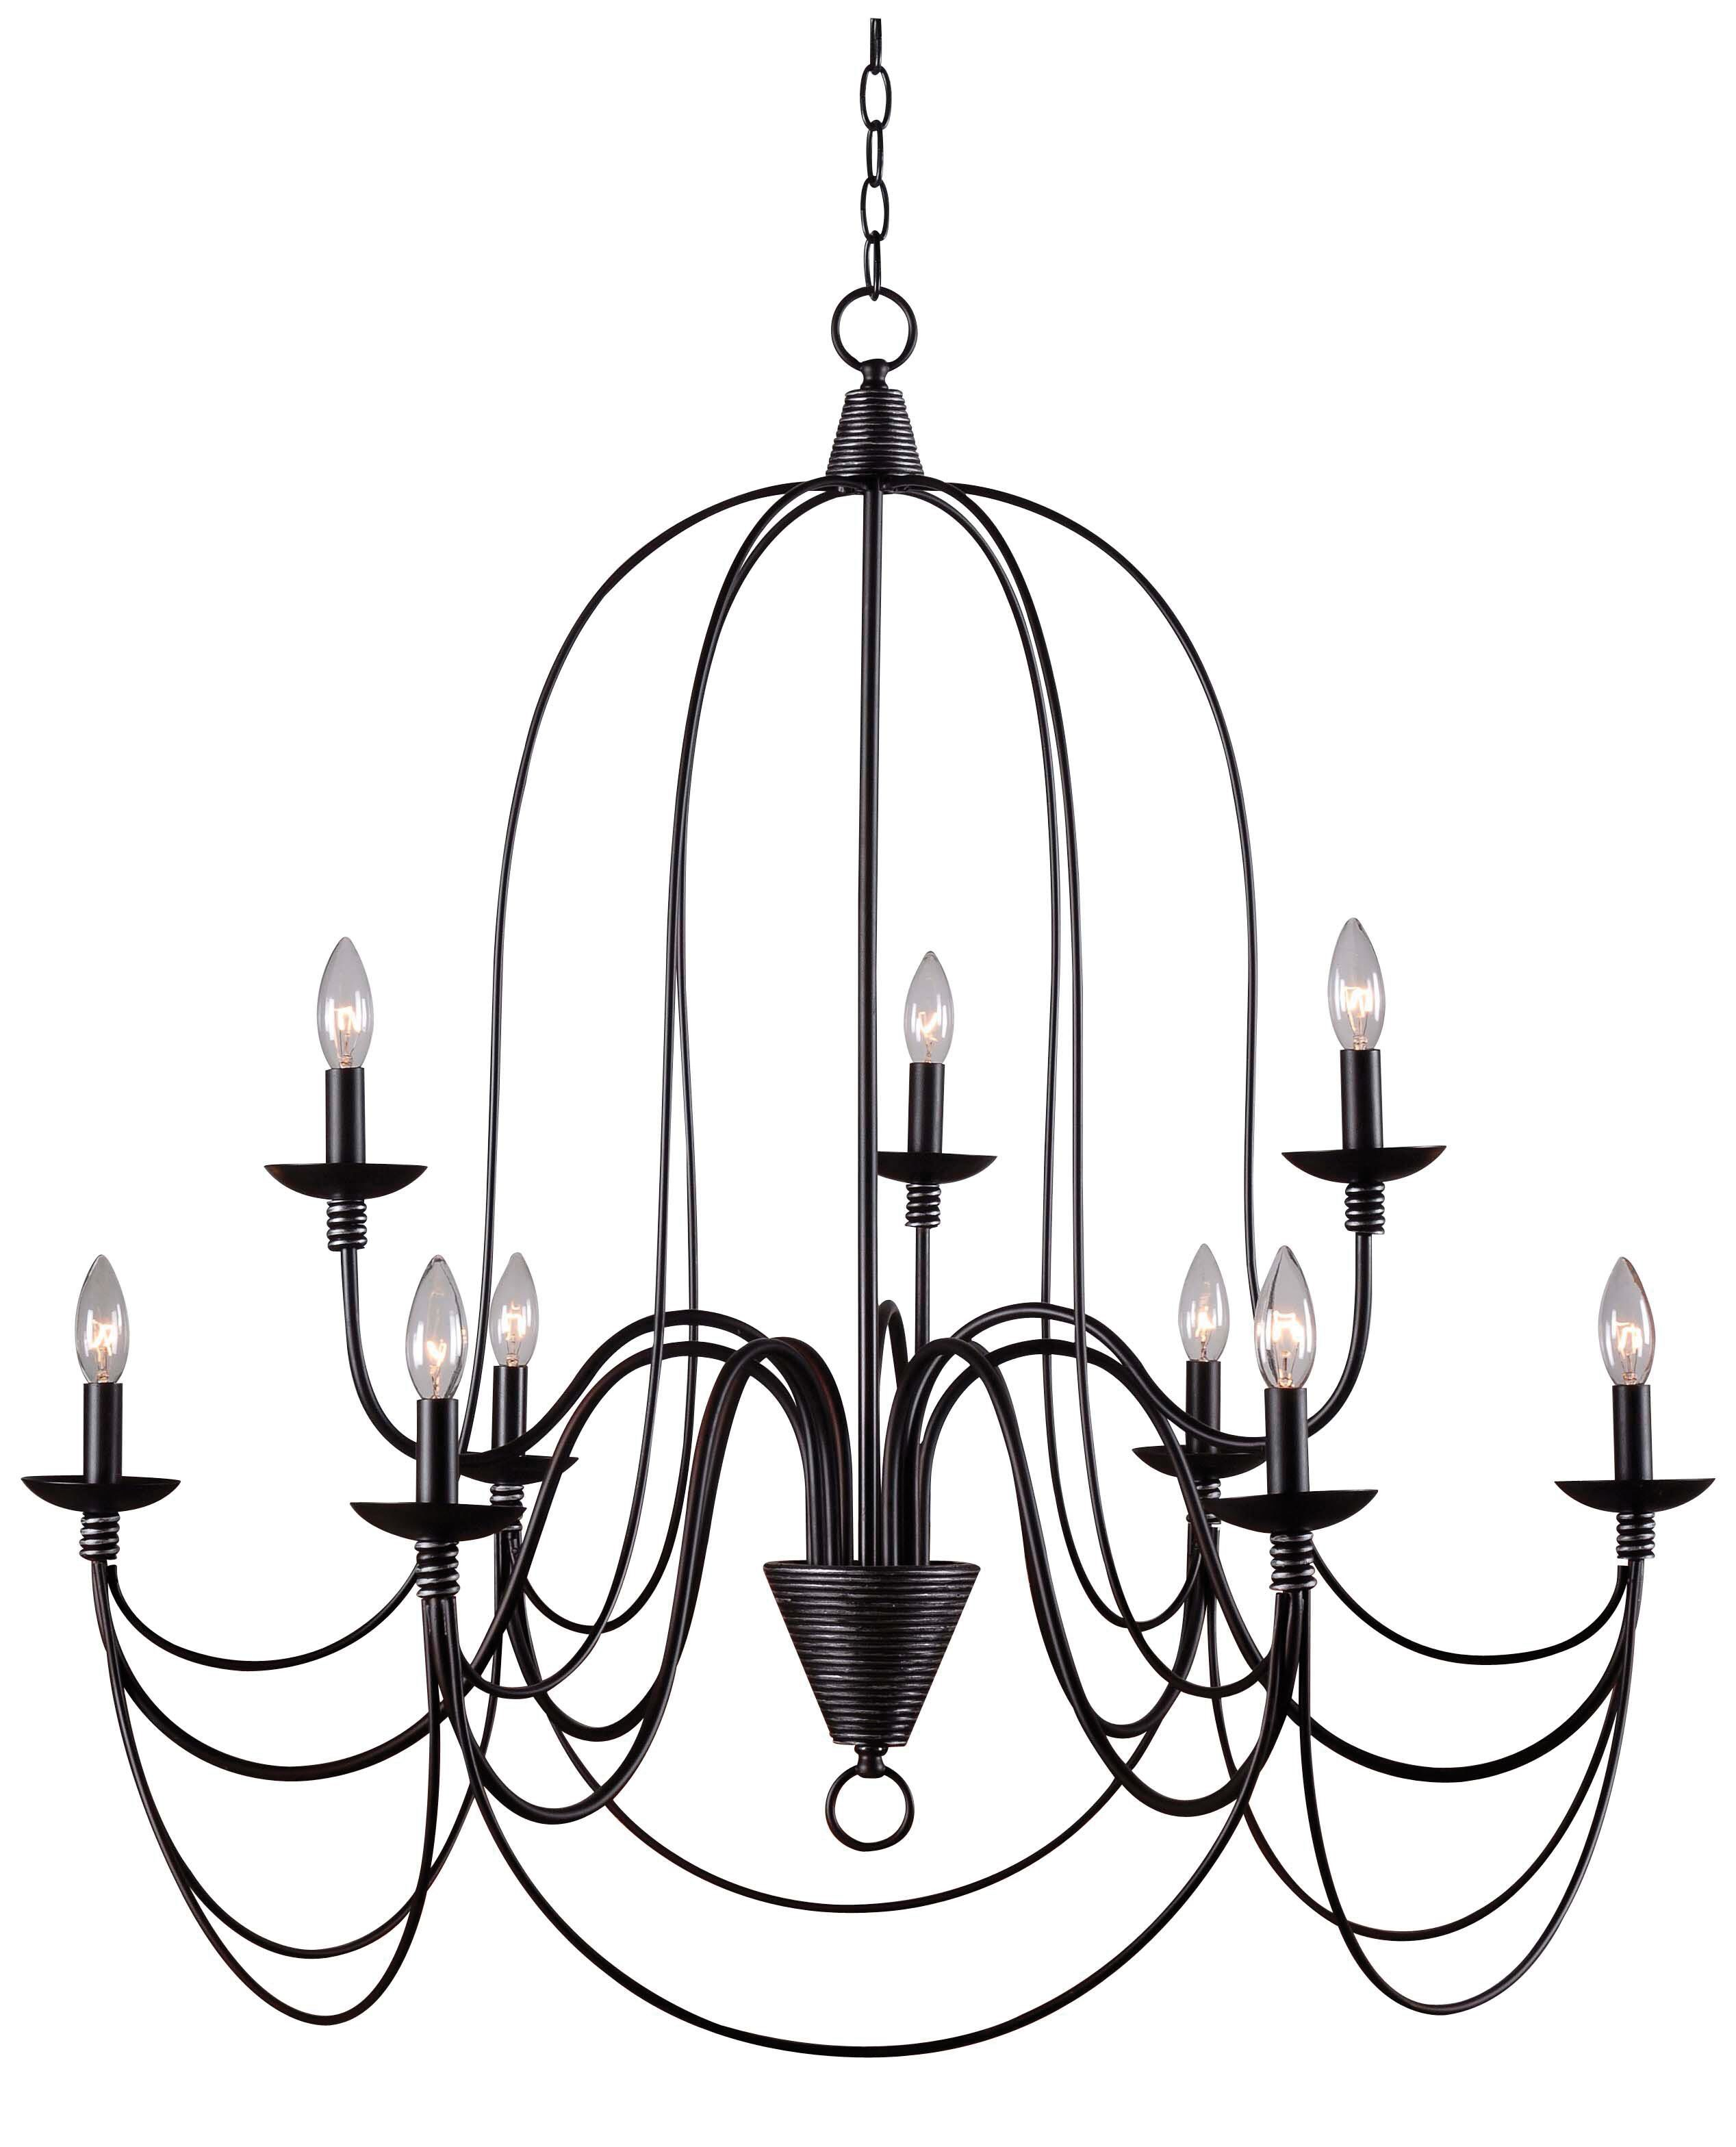 Watford 9-Light Candle Style Chandelier In 2019 | Saltbox with regard to Watford 9-Light Candle Style Chandeliers (Image 26 of 30)